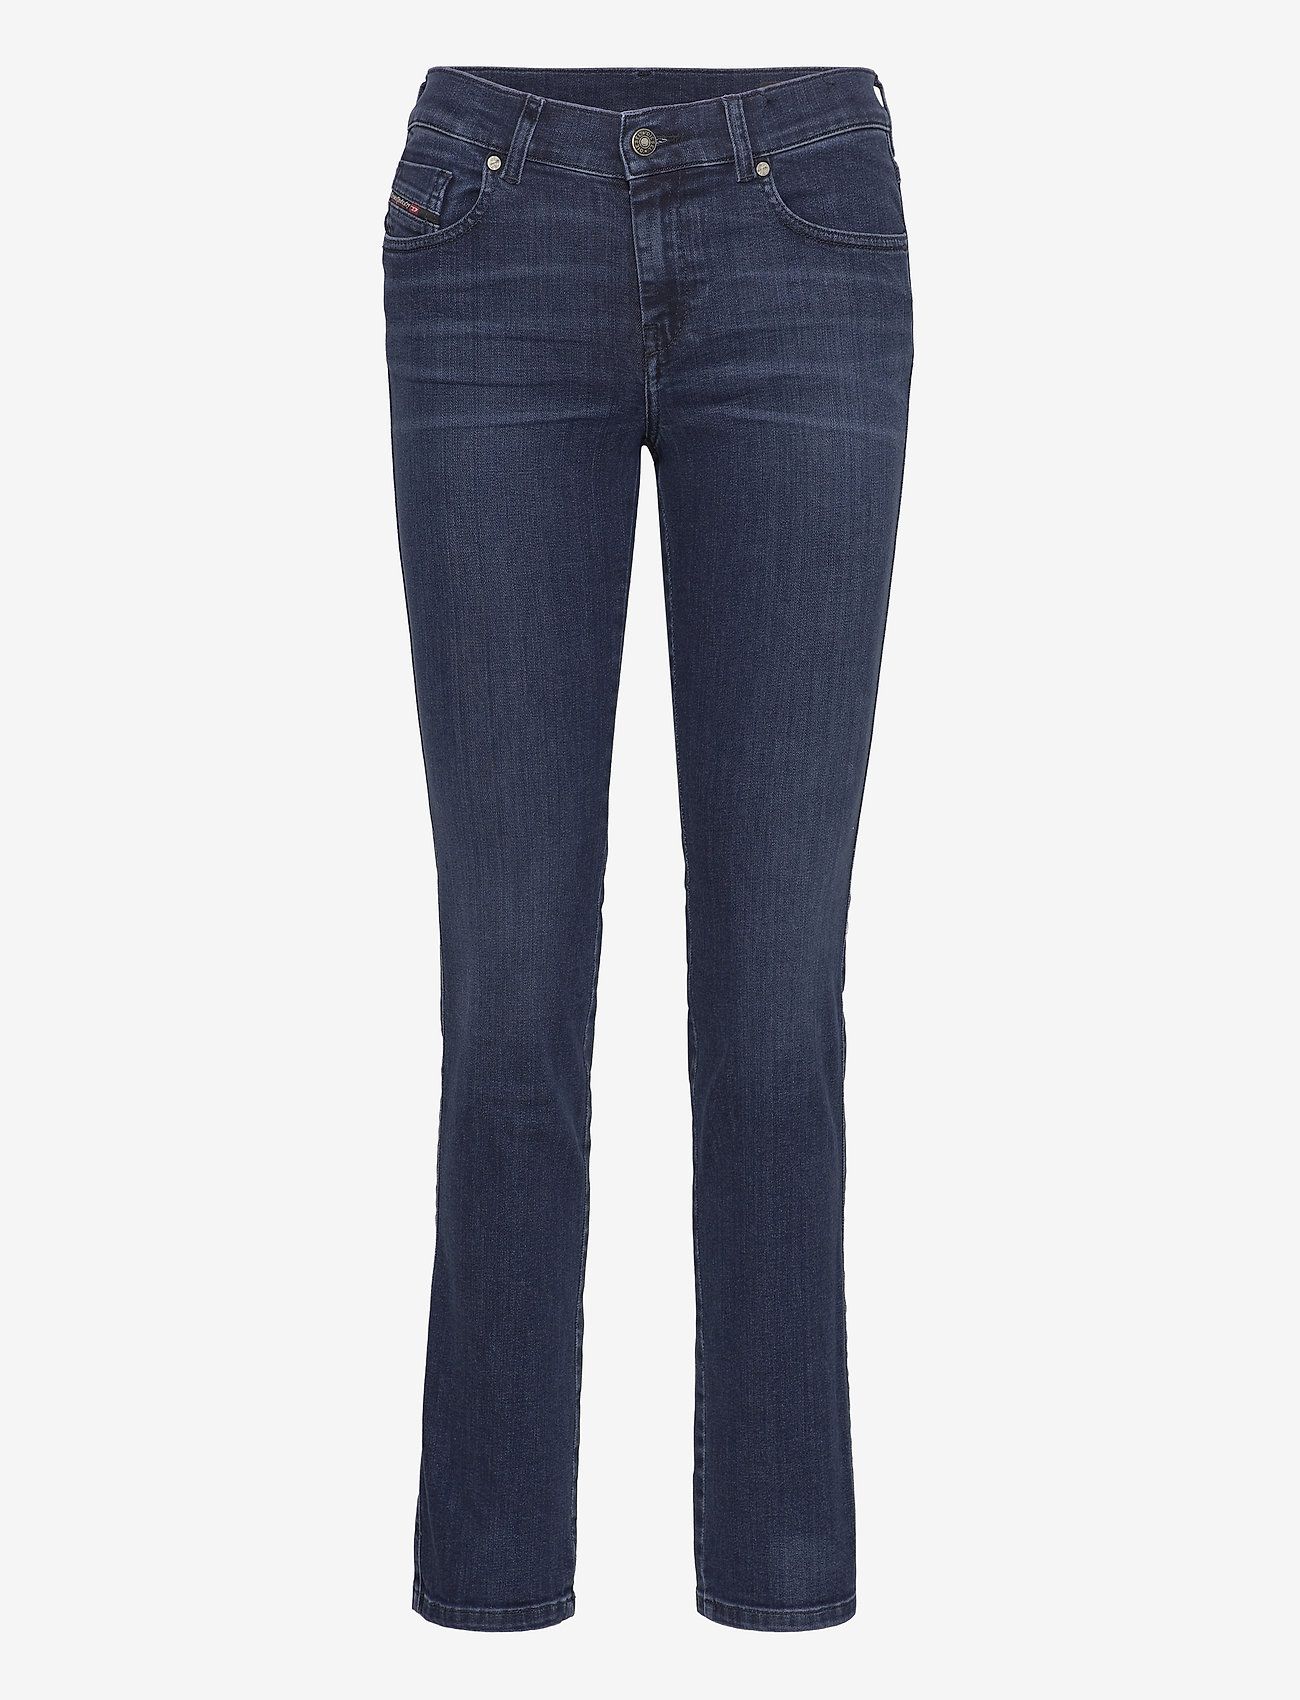 Diesel Women - D-SANDY L.32 TROUSERS - slim jeans - denim - 0